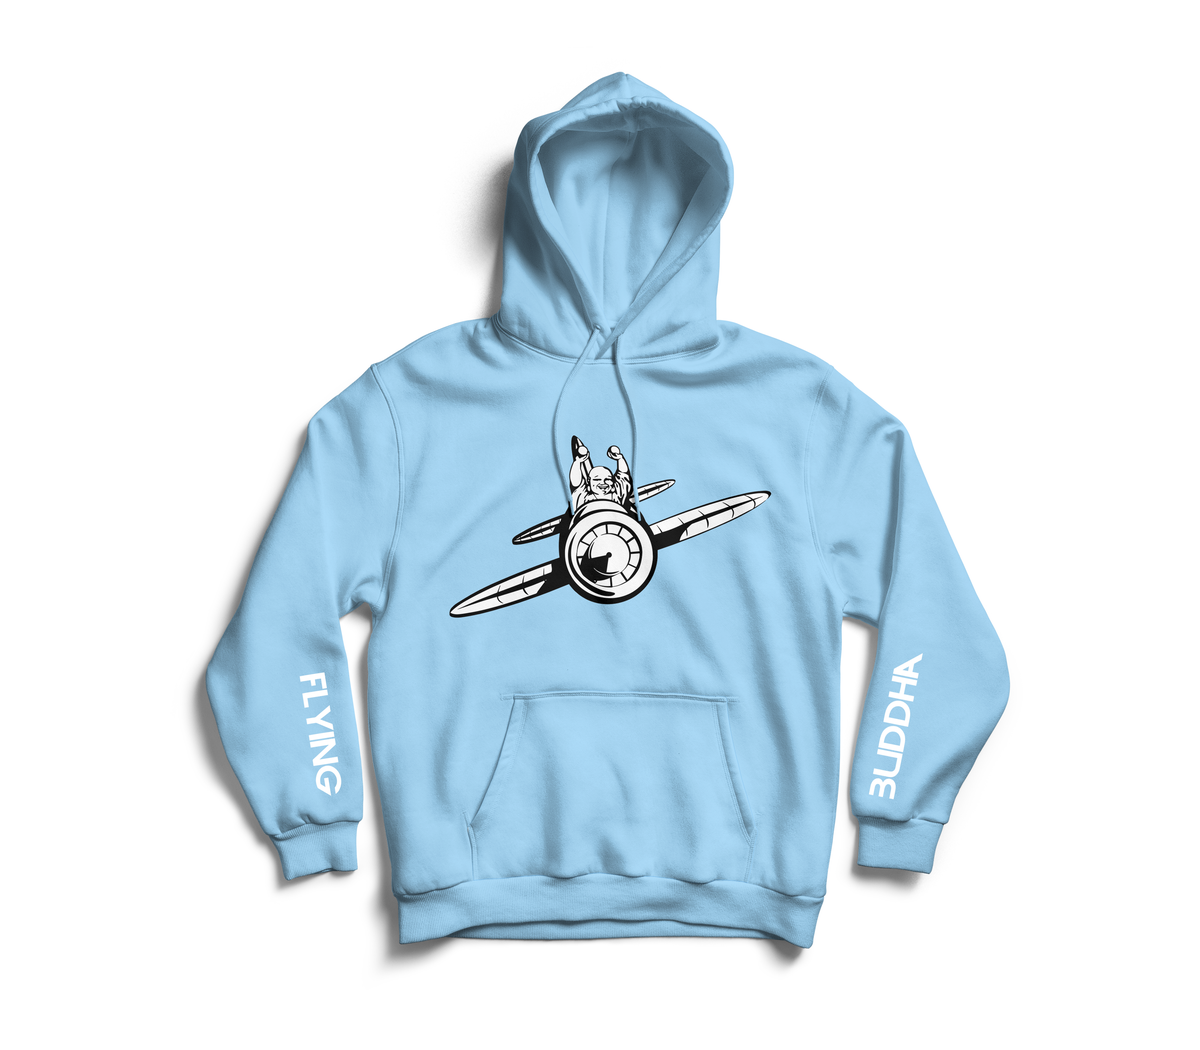 Image of Powder Blue 'Flying Buddha' Sleeve Hoodie